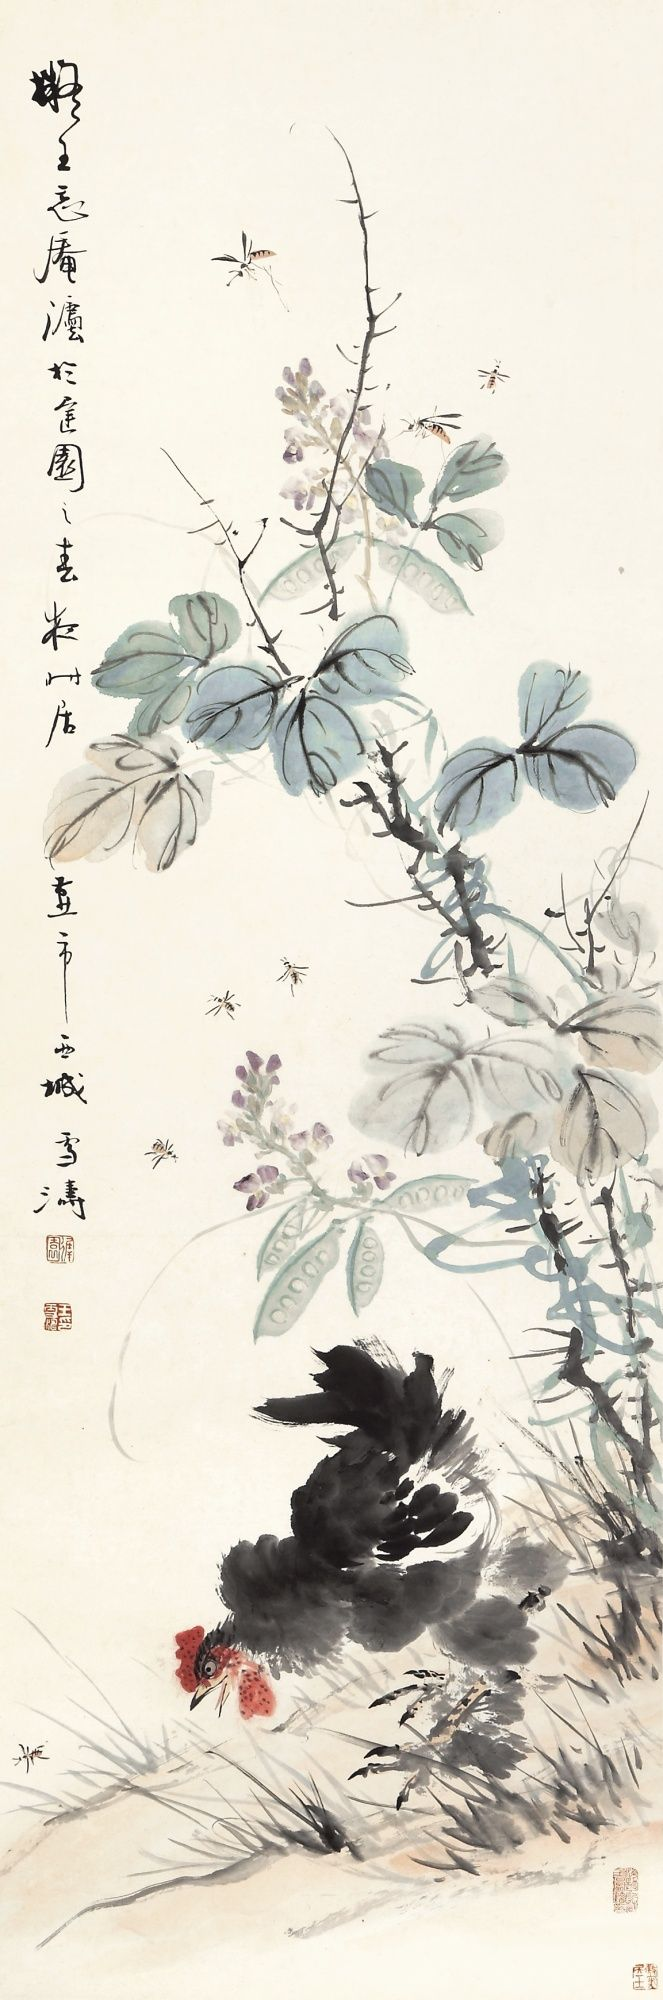 wang xuetao cock and flower | flowers & birds | sotheby's hk0398lot6f79yen